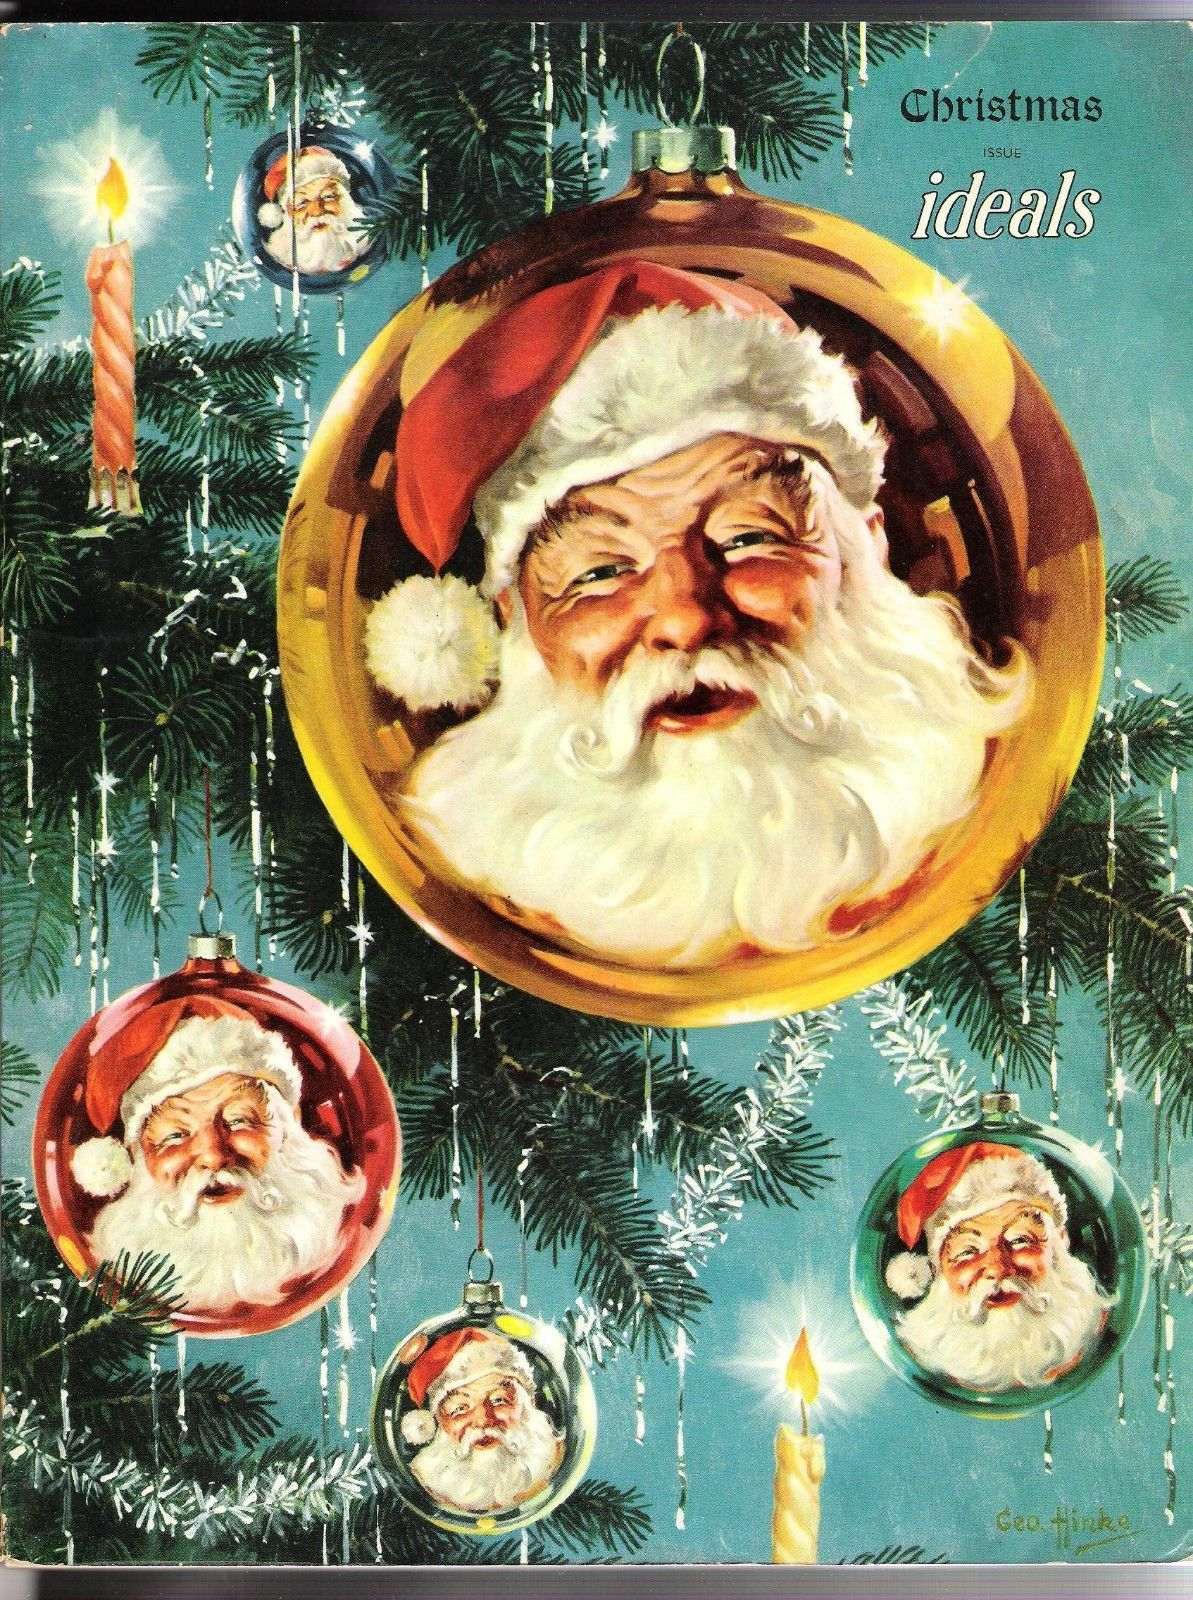 Old Ideals Christmas Magazine 1950 Vol 7 No 6 Santa Art by George ...